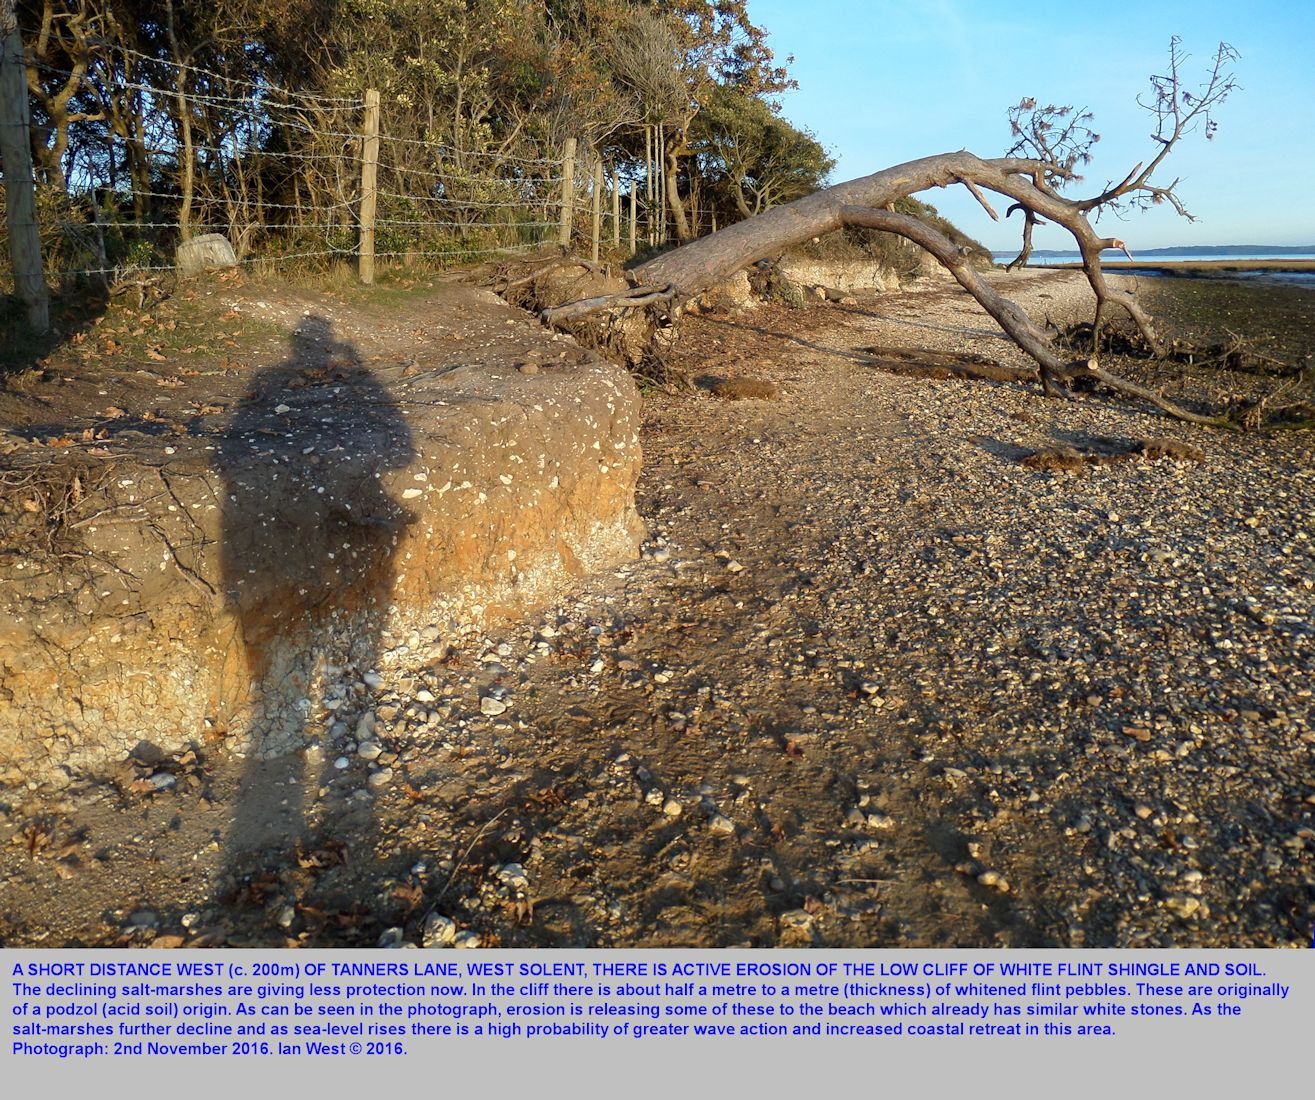 Erosion of a low cliff and collapse of a tree, a short distance west of Tanners Lane, Solent Estuaries, southern England, 2nd November 2016